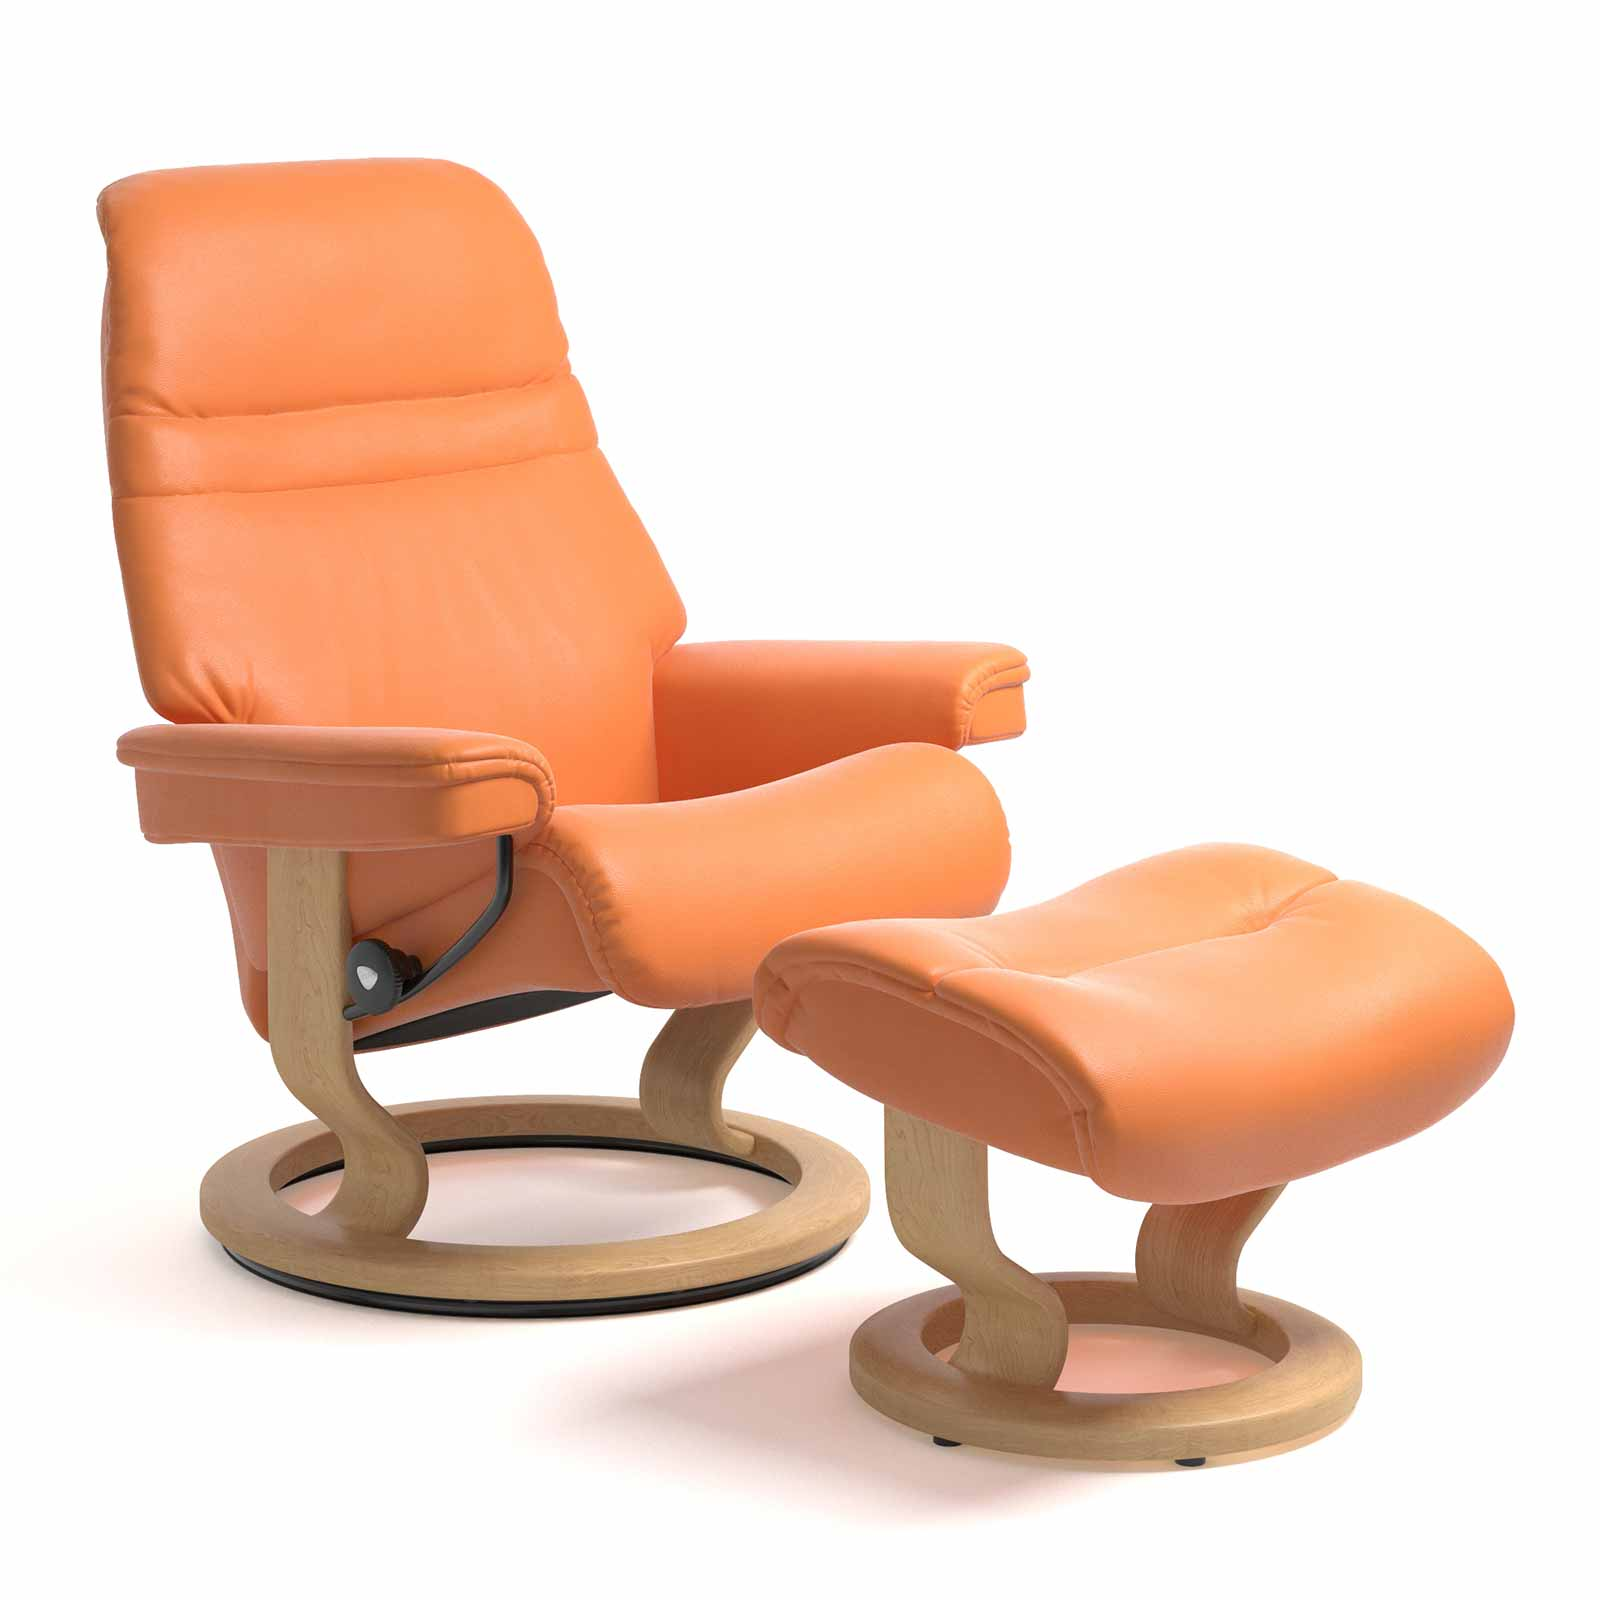 Stressless Sessel Sunrise Classic Paloma Apricot Orange Mit Hocker